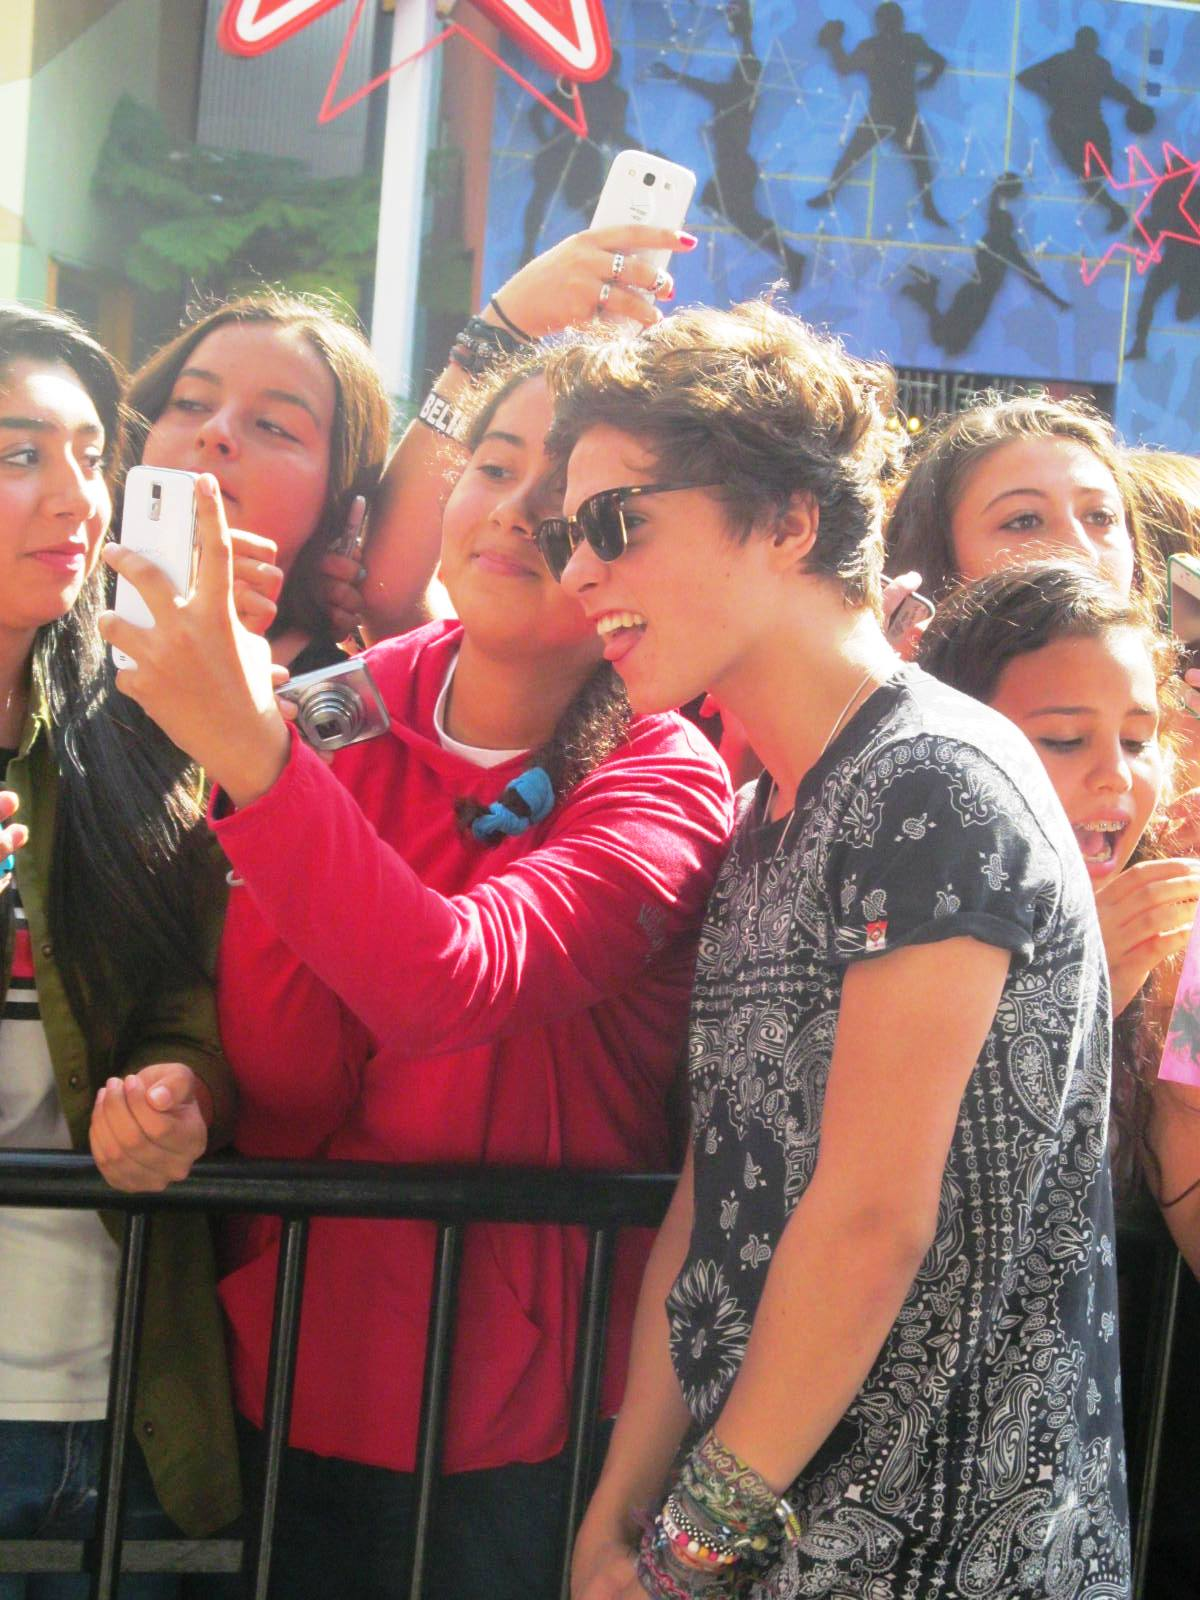 The vamps young hollywood life bradley taking a picture with a us fan that came out last minute for a meet and greet with the uk boy band the vamps m4hsunfo